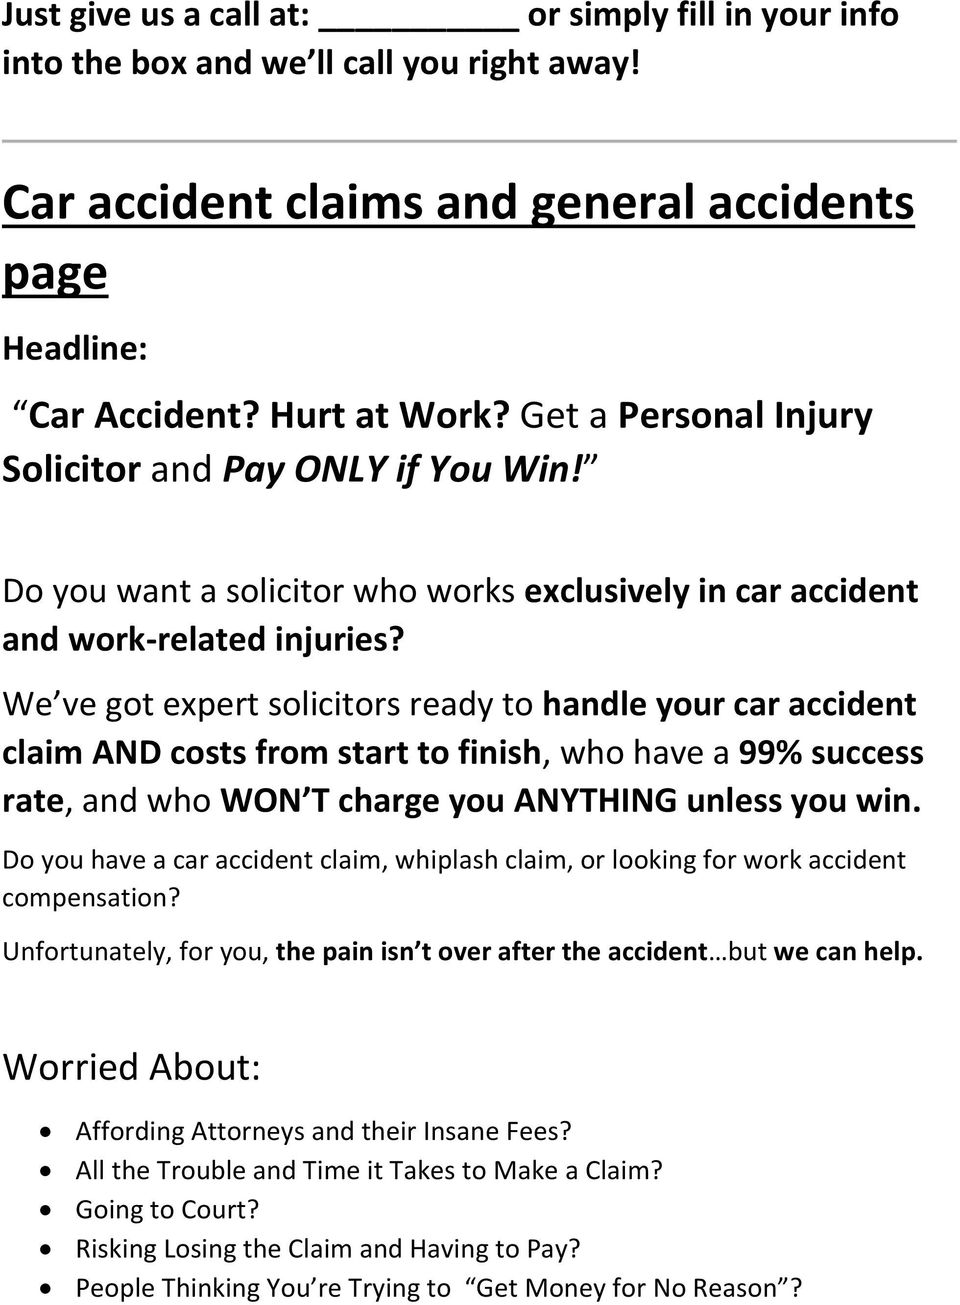 We ve got expert solicitors ready to handle your car accident claim AND costs from start to finish, who have a 99% success rate, and who WON T charge you ANYTHING unless you win.